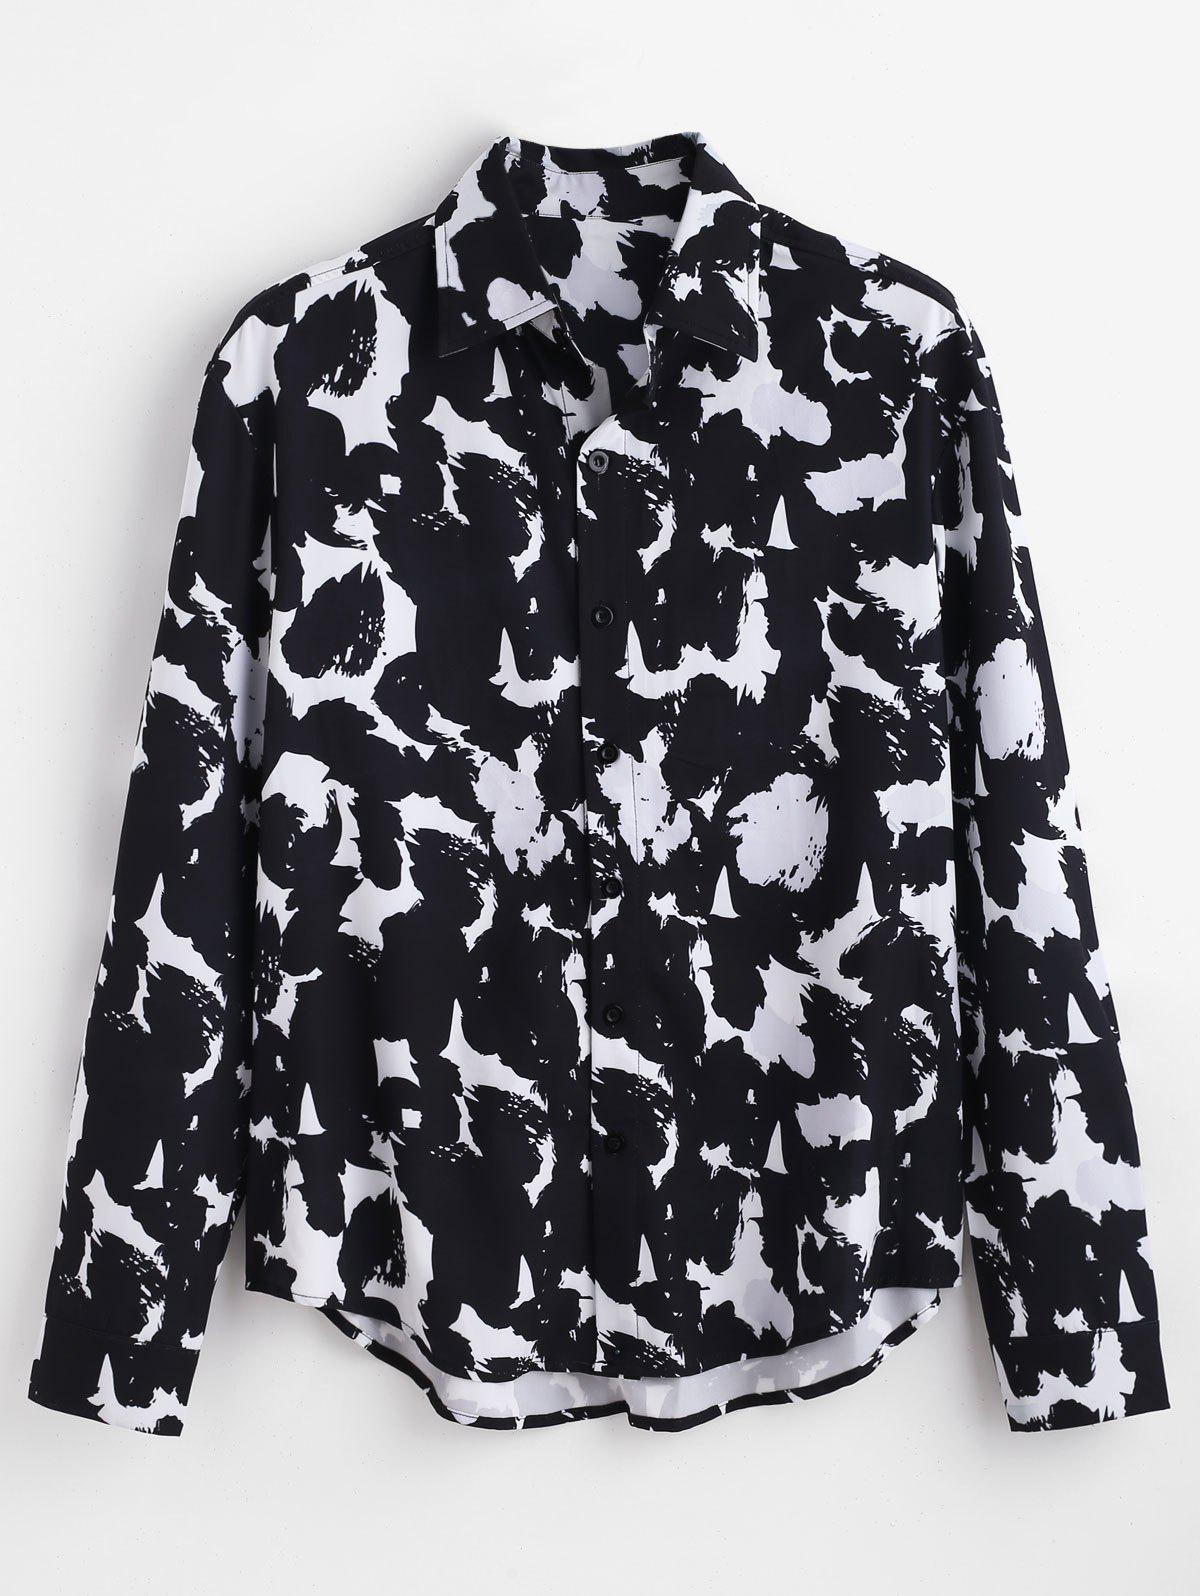 ZAFUL All Over Printed Casual Shirt